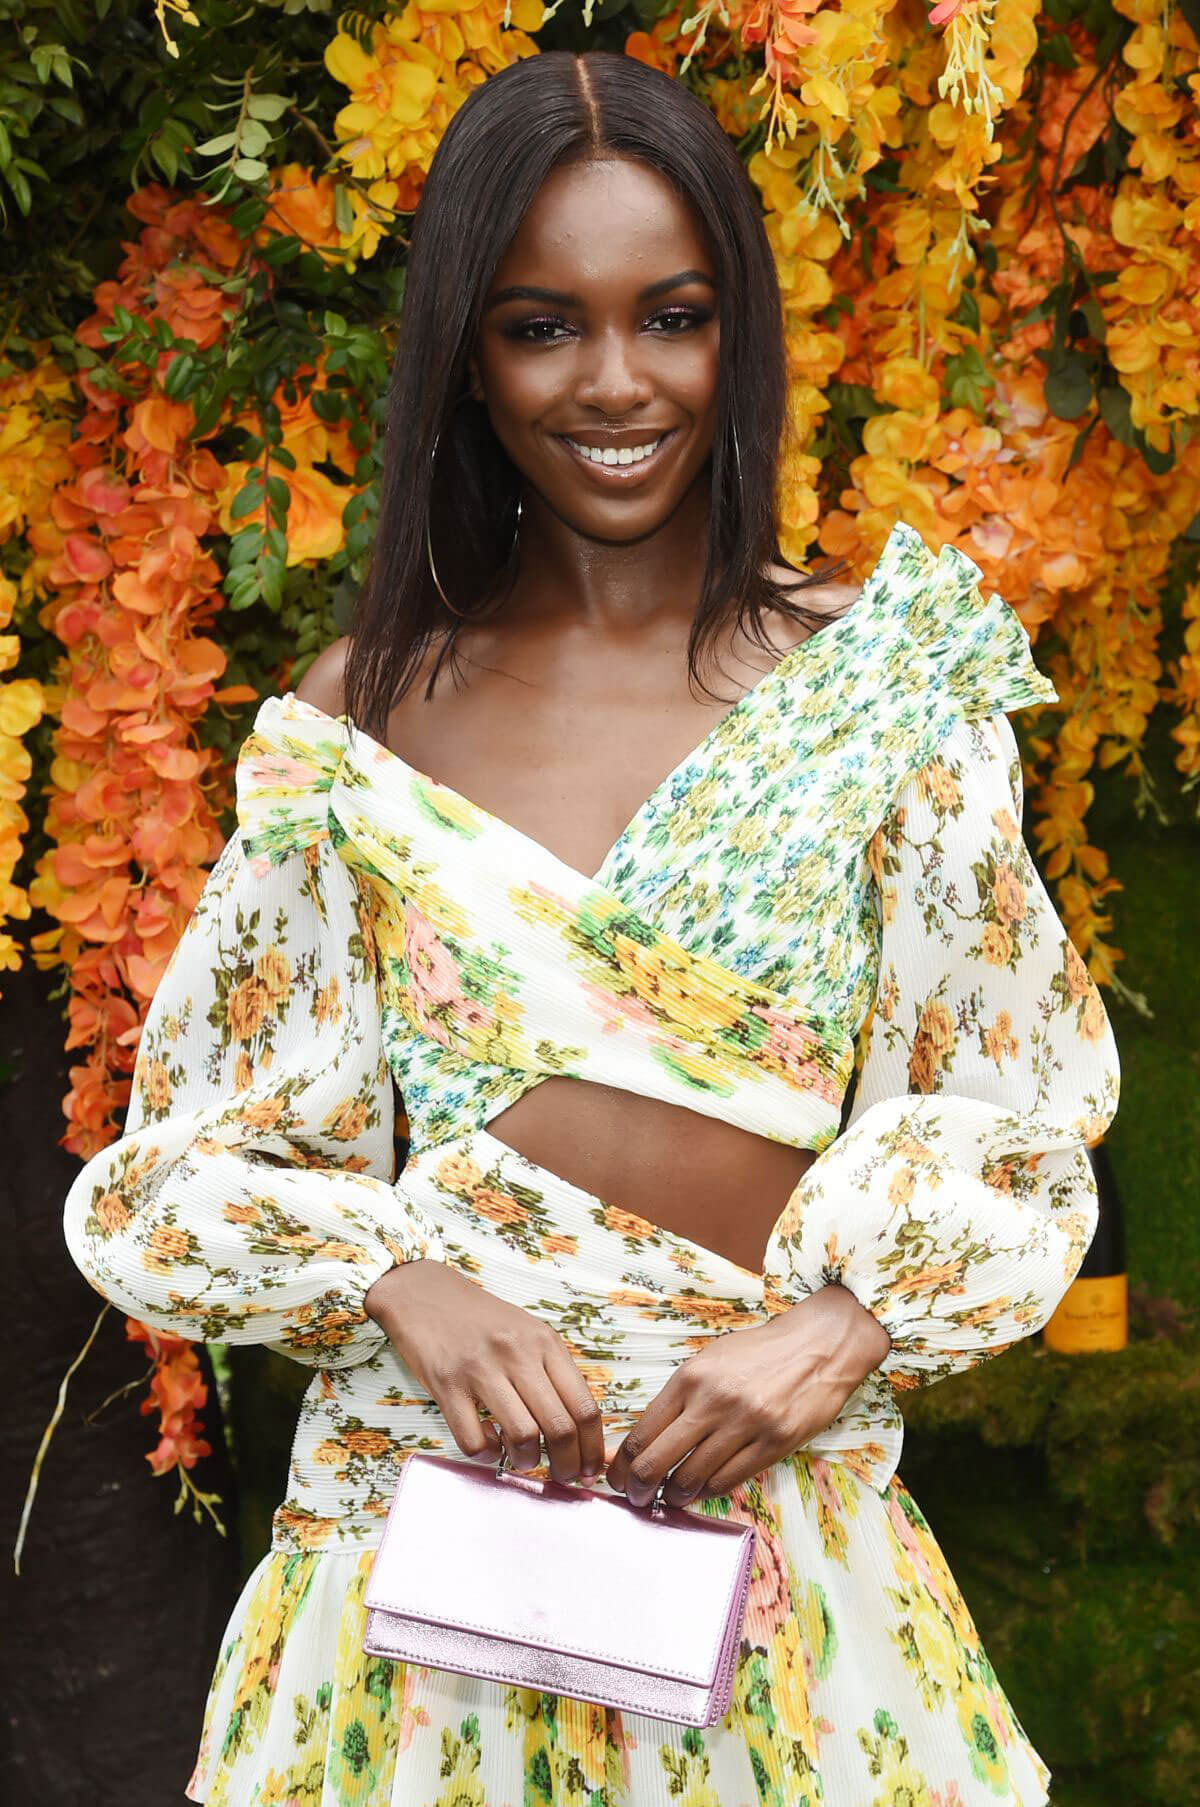 leomie-anderson-at-veuve-clicquot-polo-classic-2018-in-new-jersey-2018-06-02-05.jpg